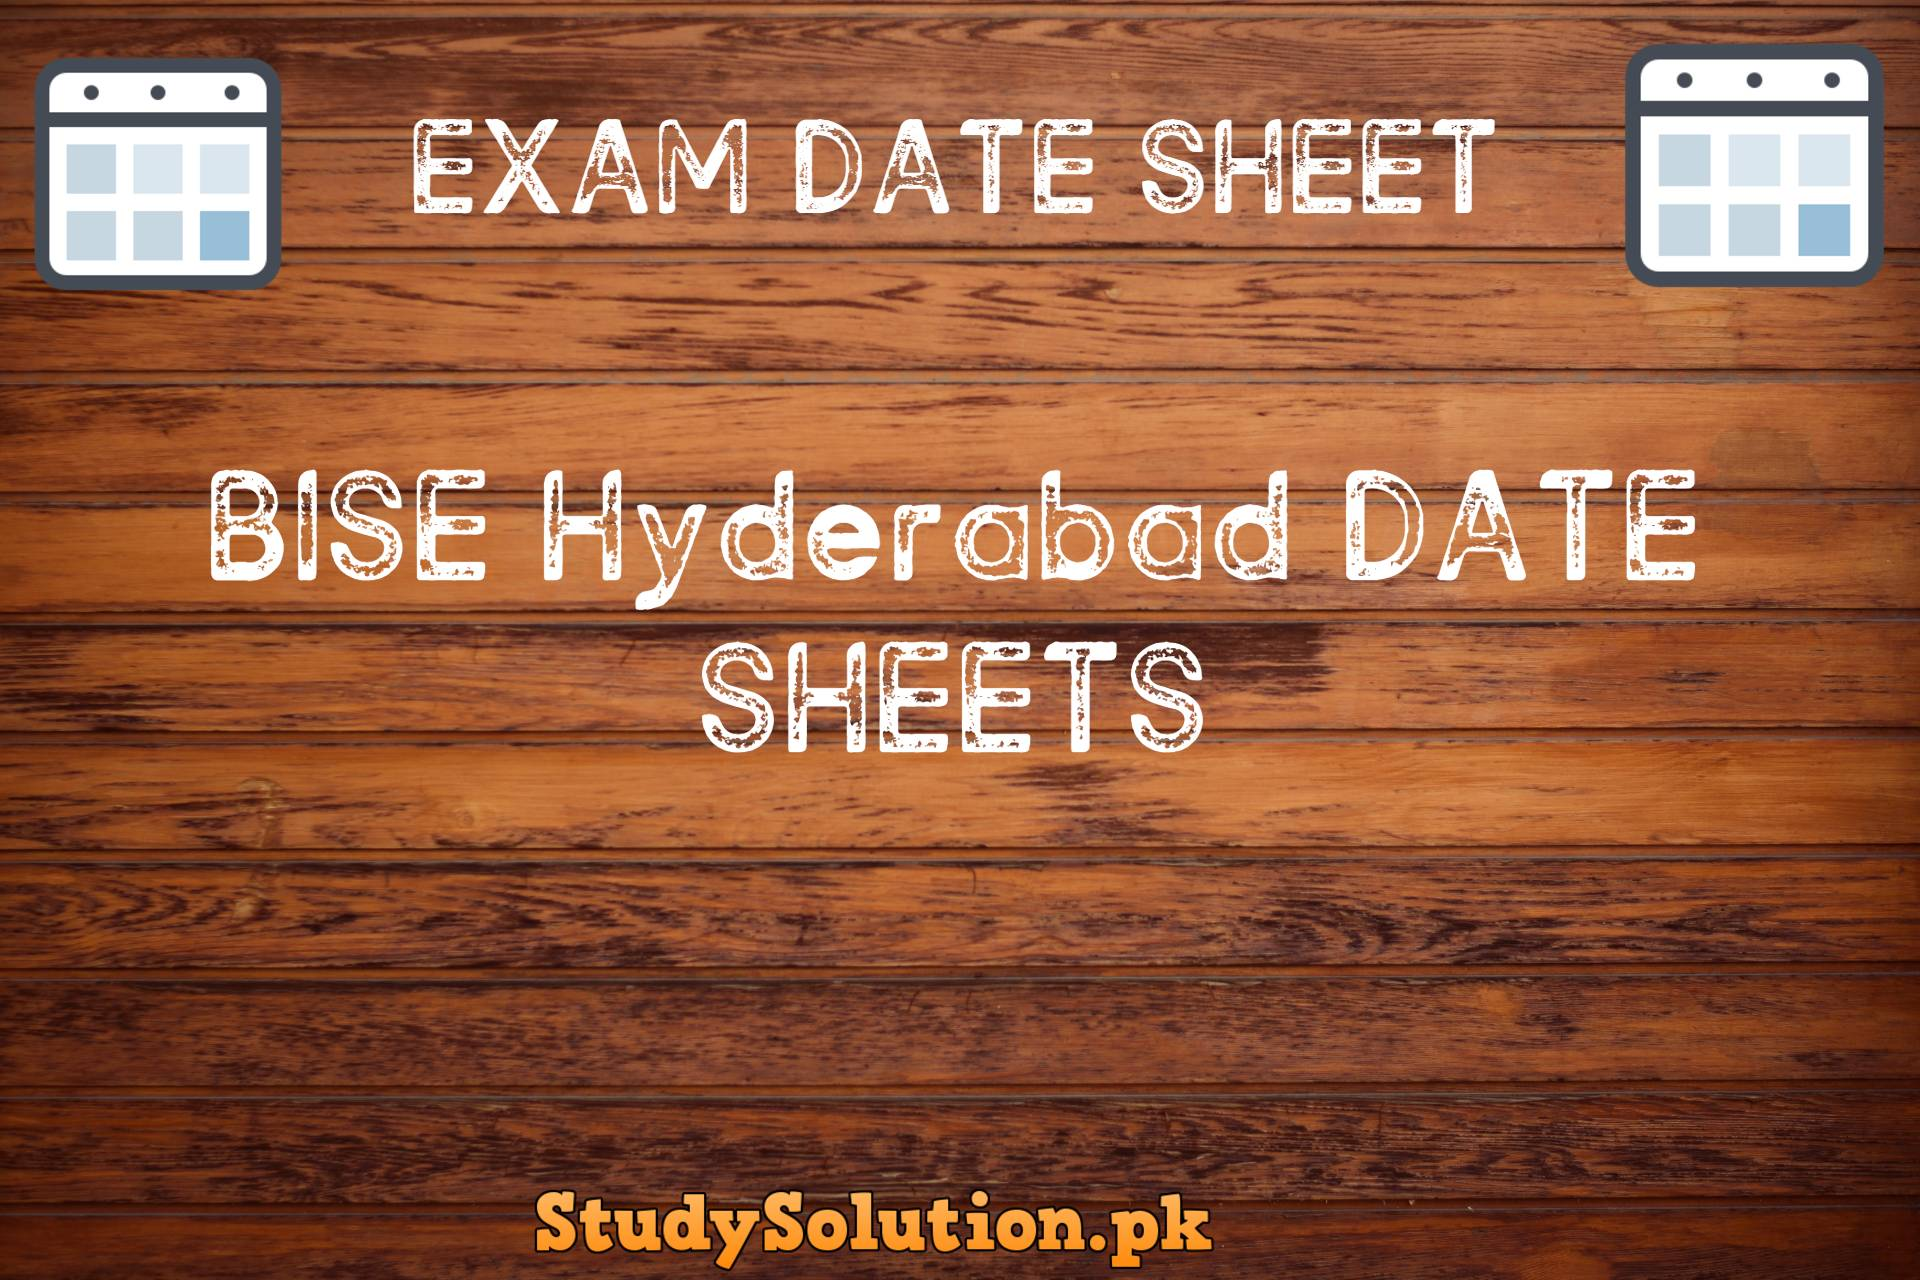 BISE Hyderabad Date Sheets